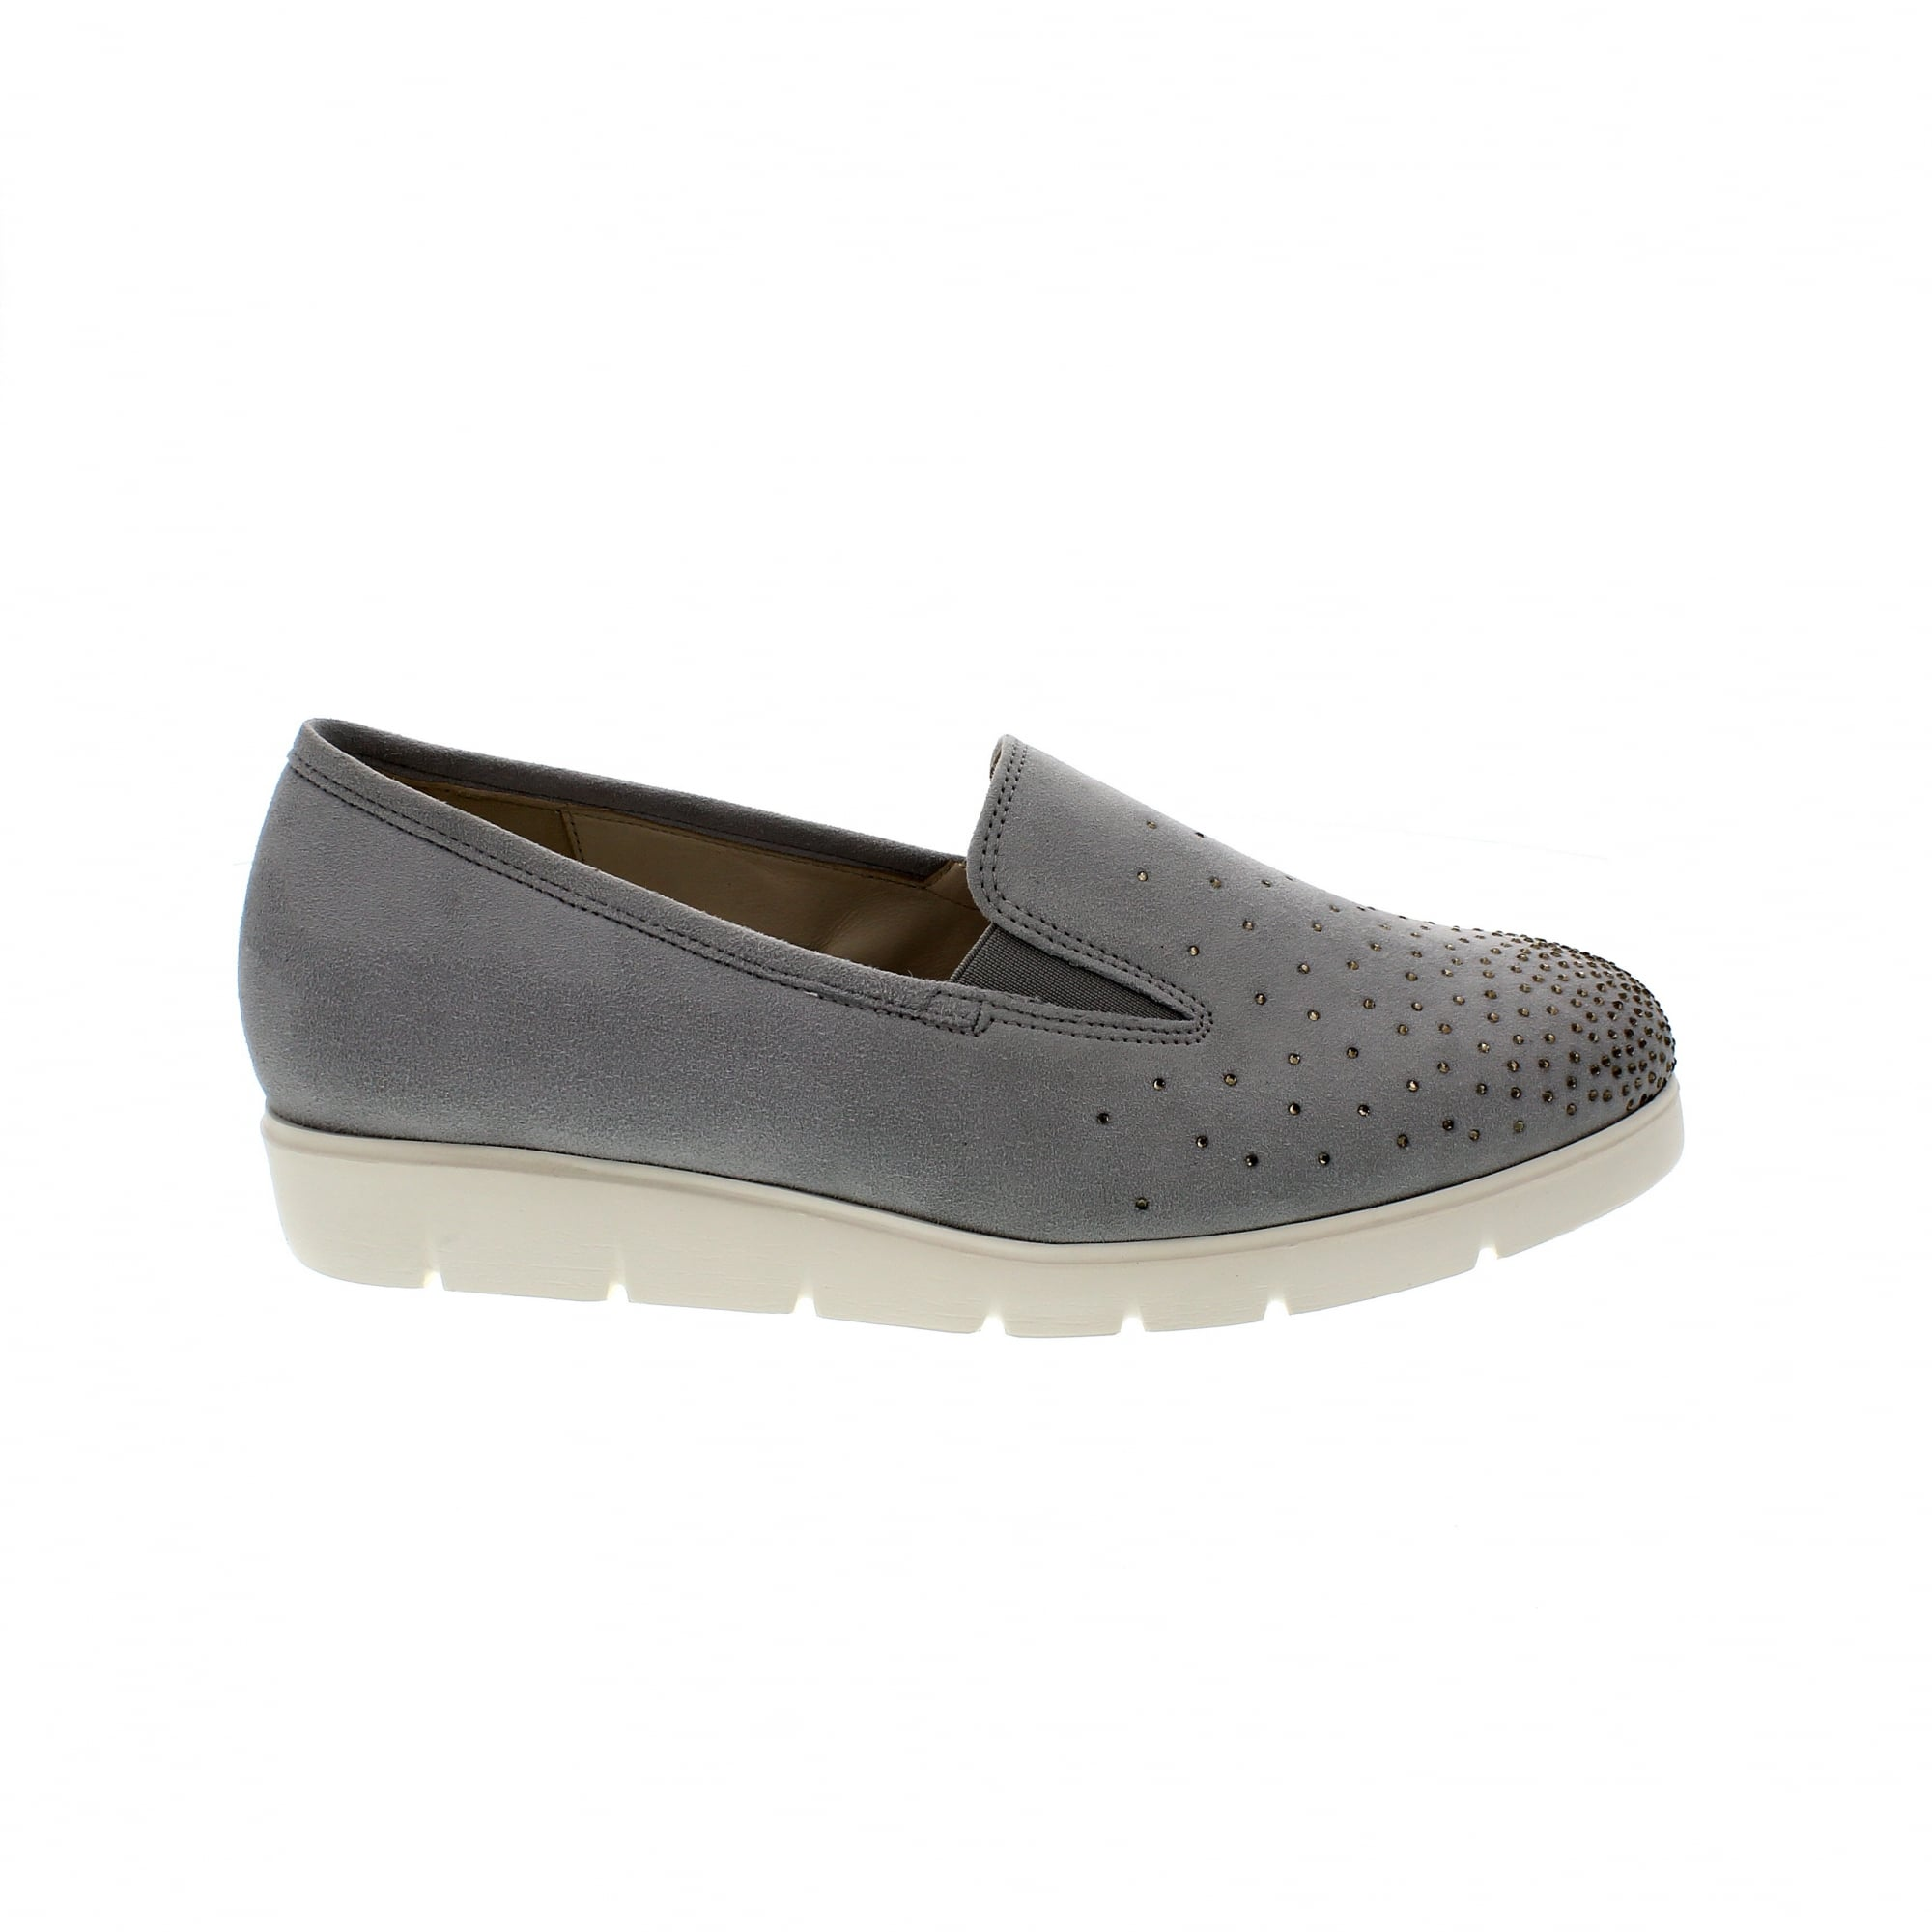 441827ace0f85a Gabor Angela 82-581-40 Grey Suede Slip On Trainers